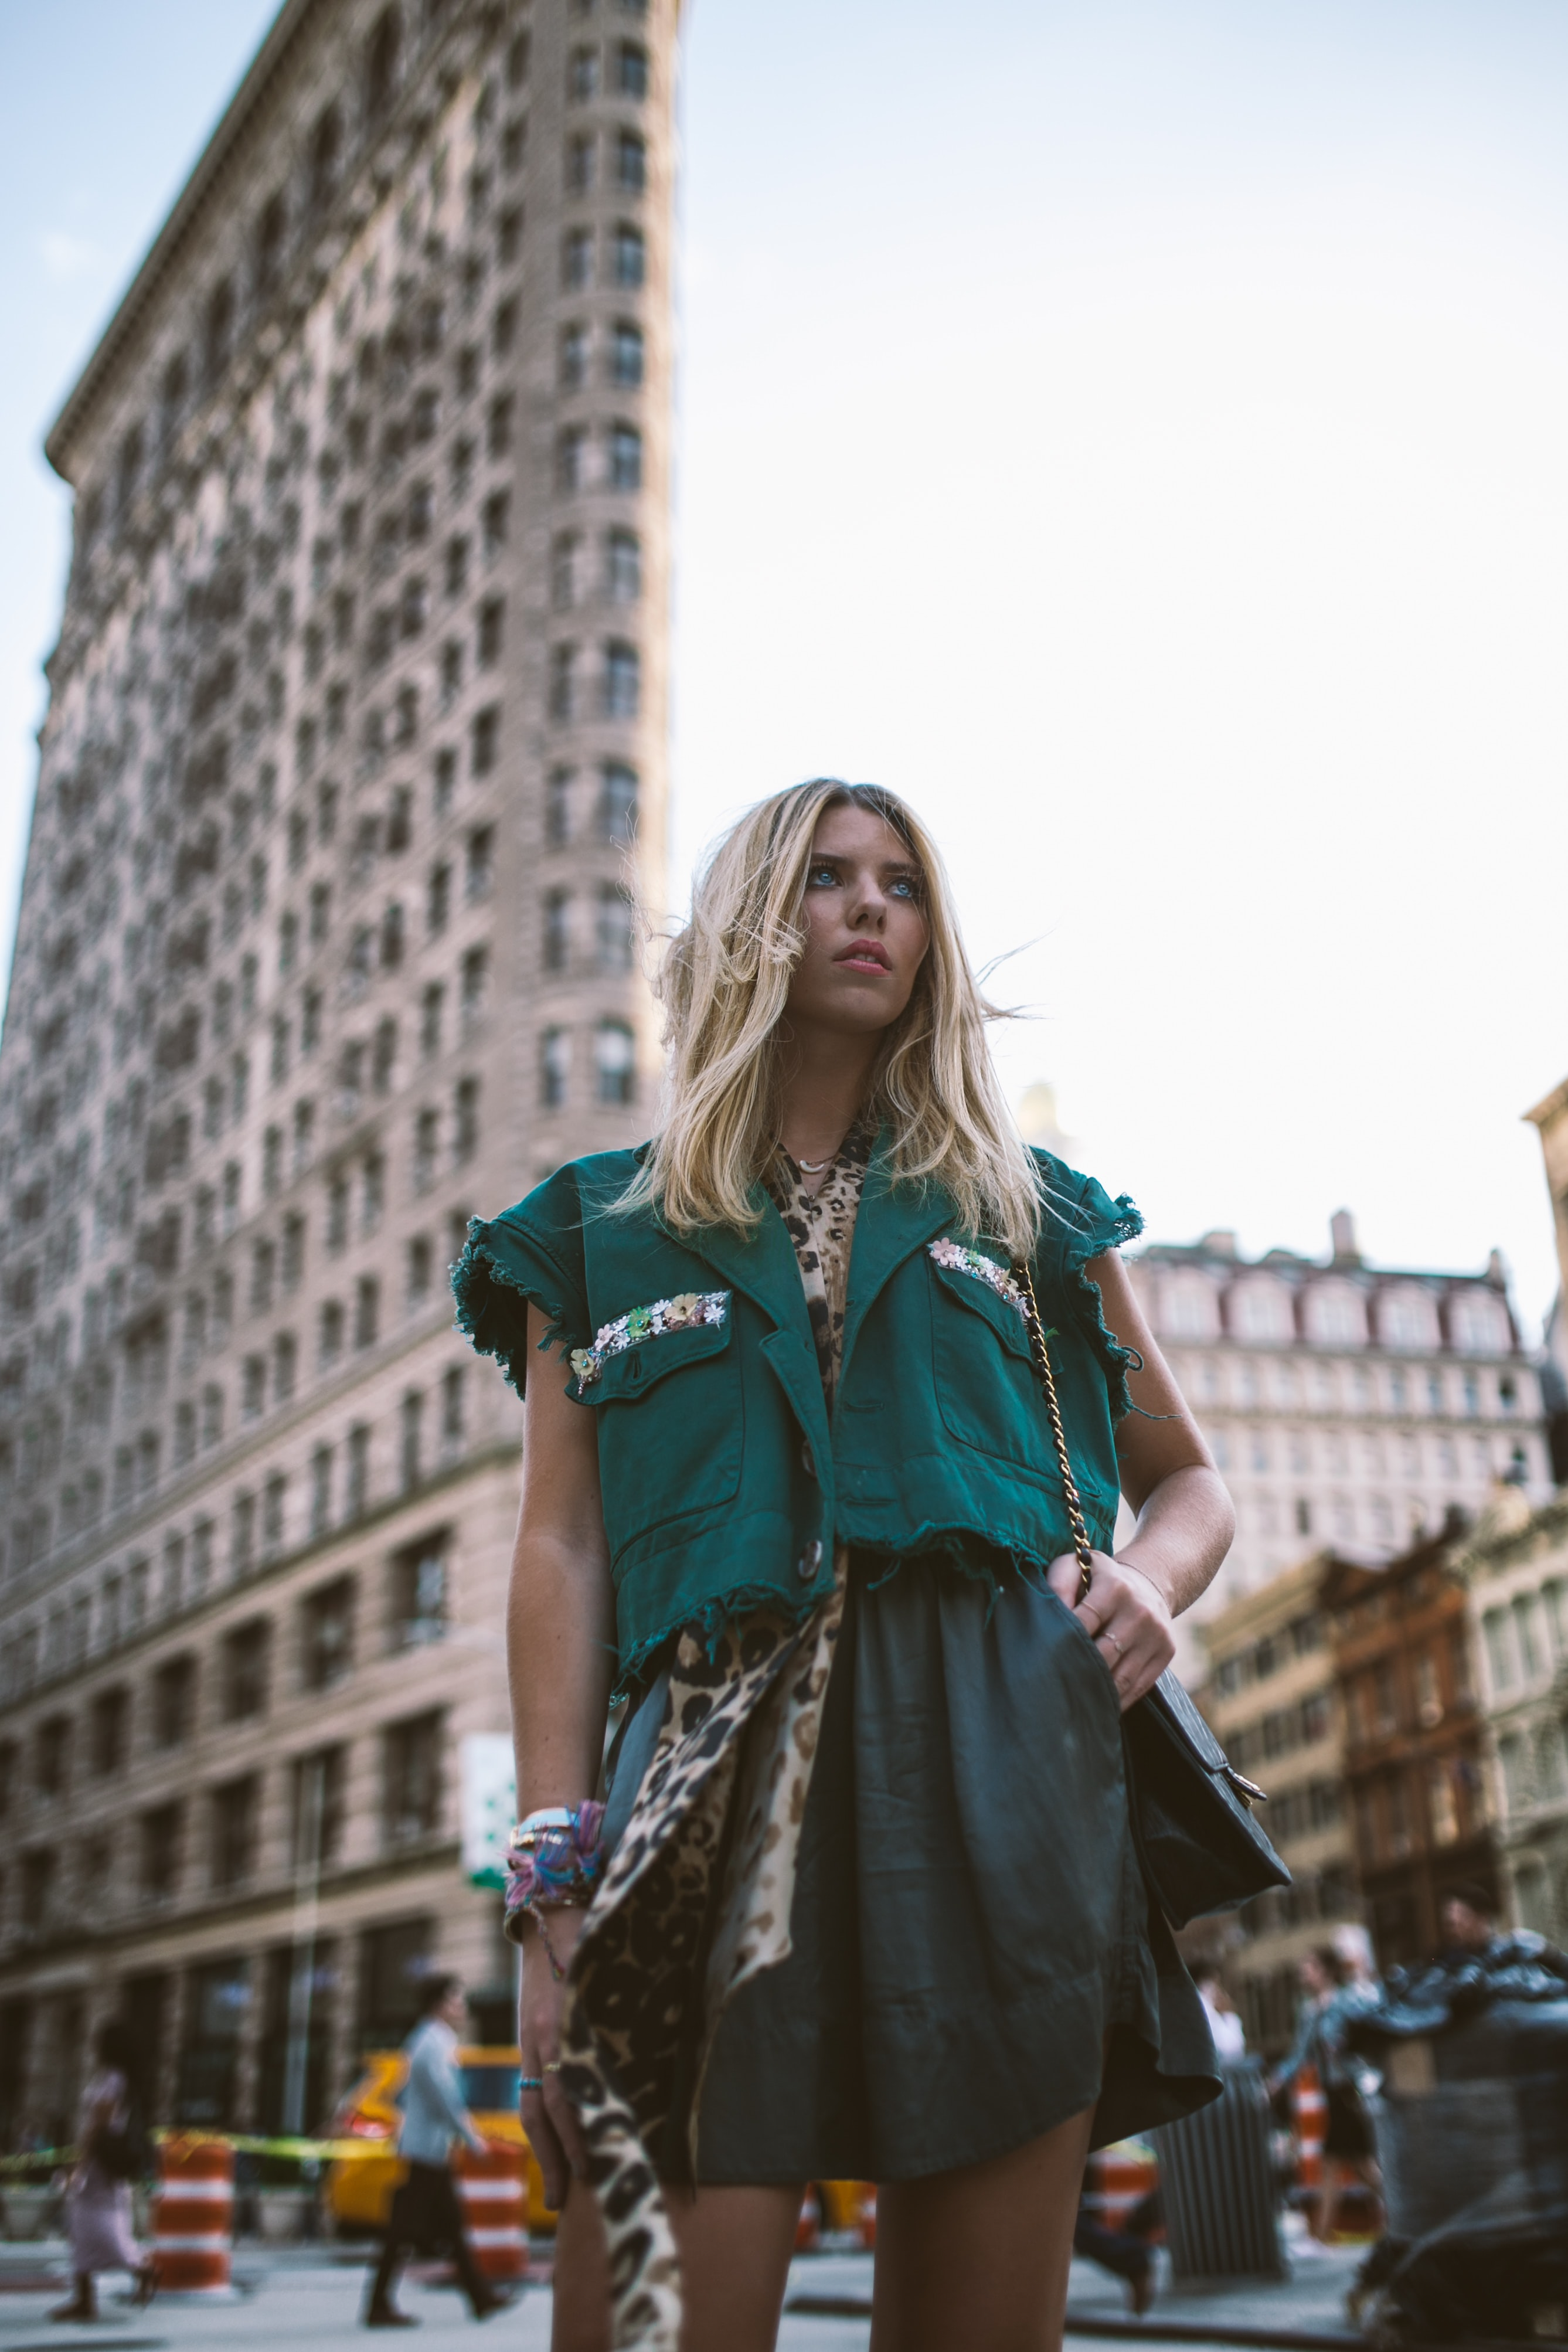 Trendy woman models a blue and green outfit in the city